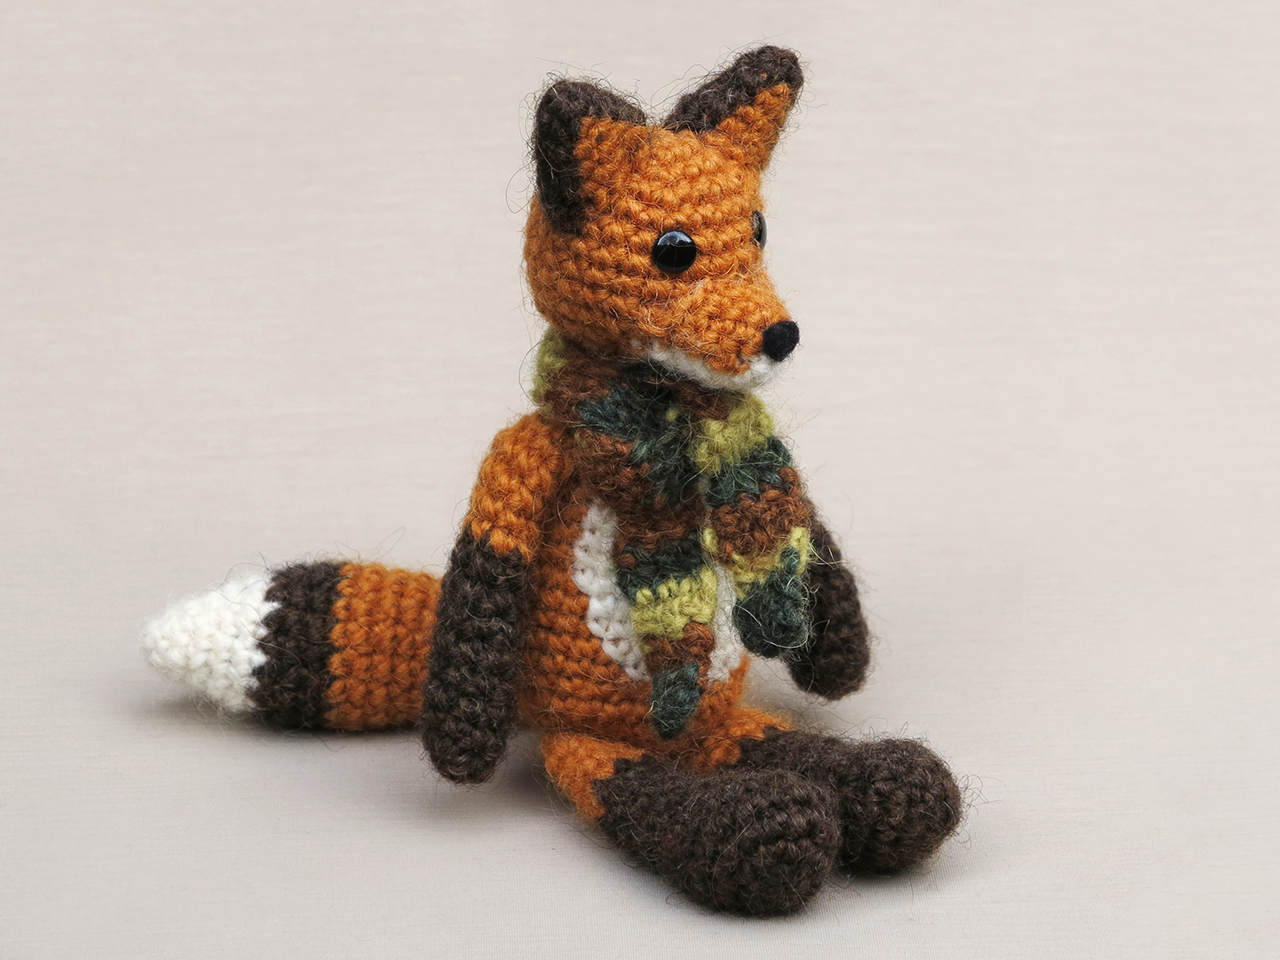 Sleeping fox amigurumi pattern - Amigurumi Today | 960x1280